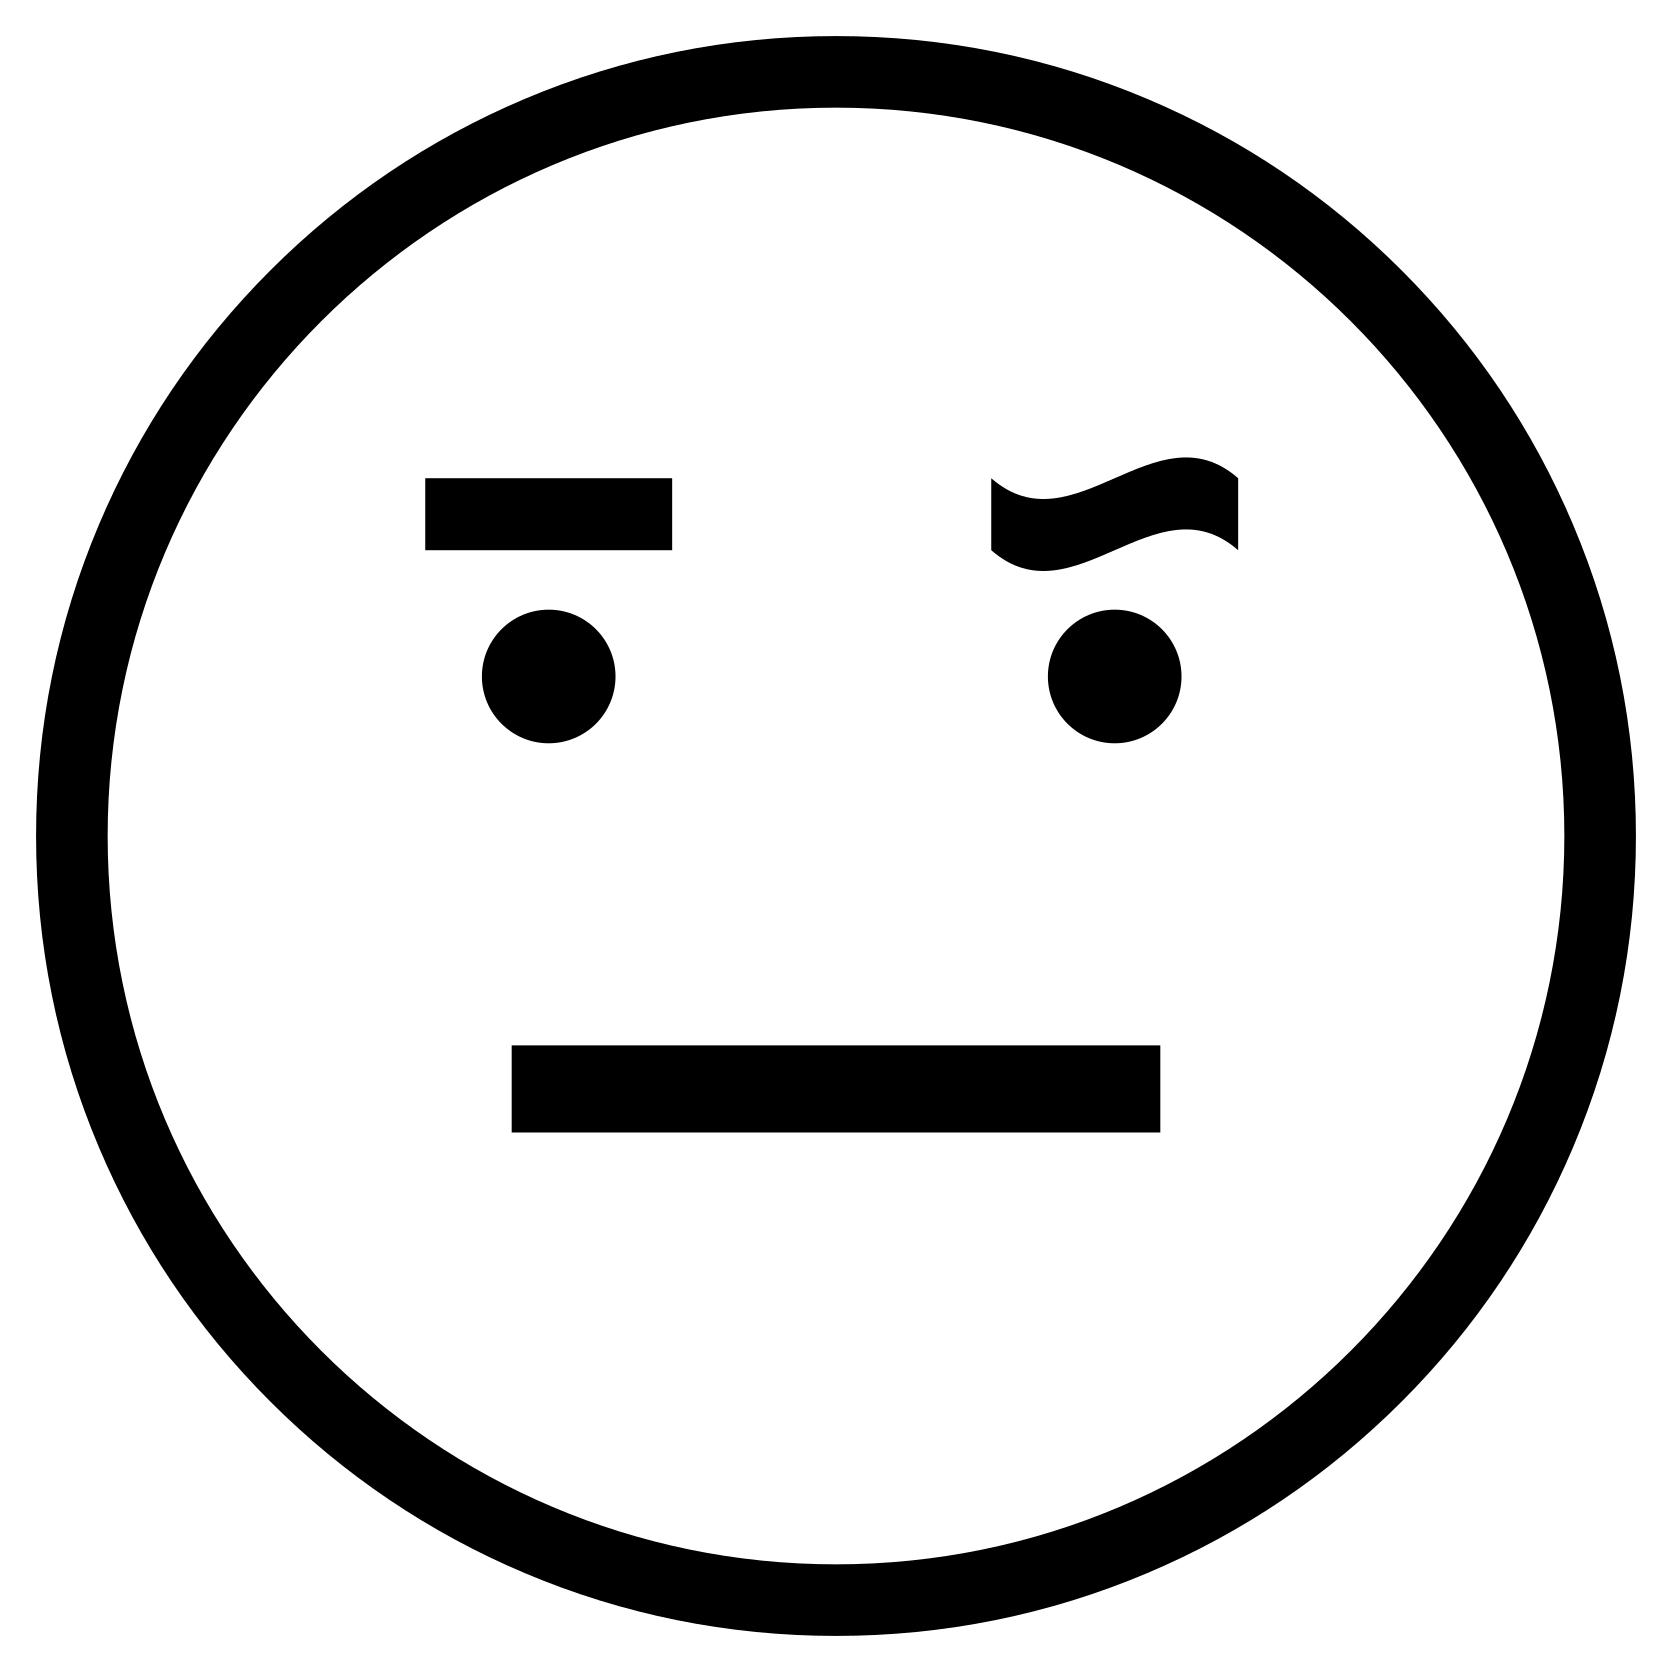 annoyed face Annoyed smiley face clipart design droide jpg